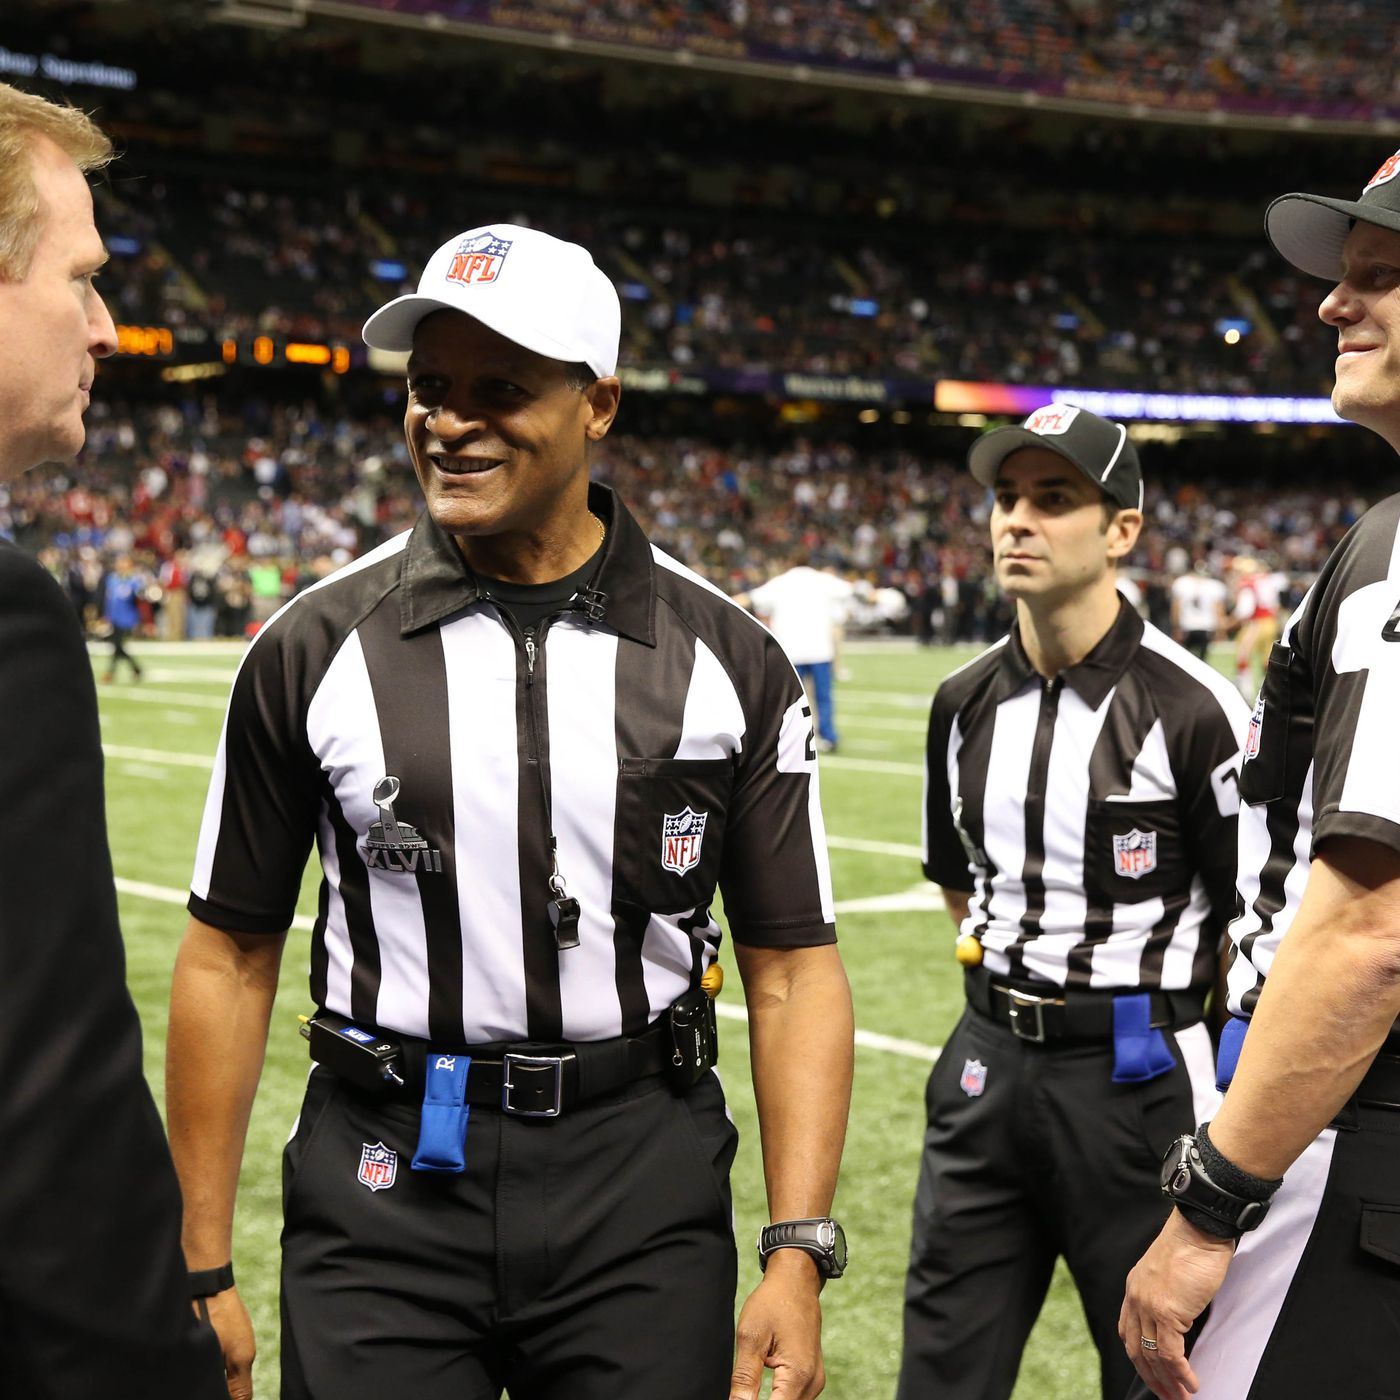 Referees Nfl Vs Other Major Sports Windy City Gridiron